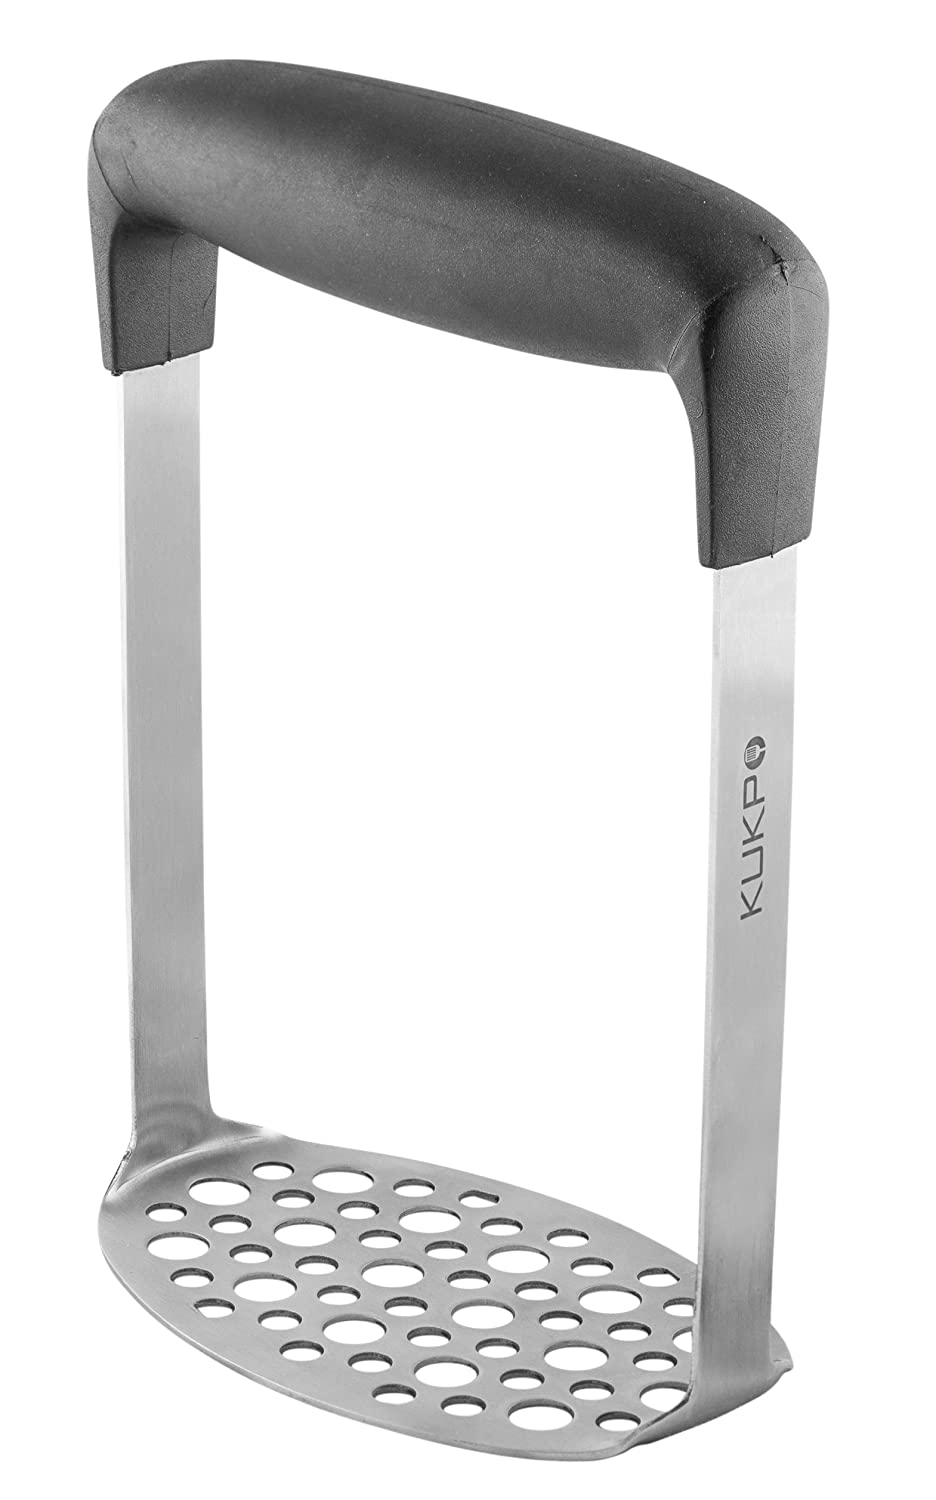 KUKPO High-quality Stainless Steel Potato Masher with Broad and Ergonomic Horizontal Handle